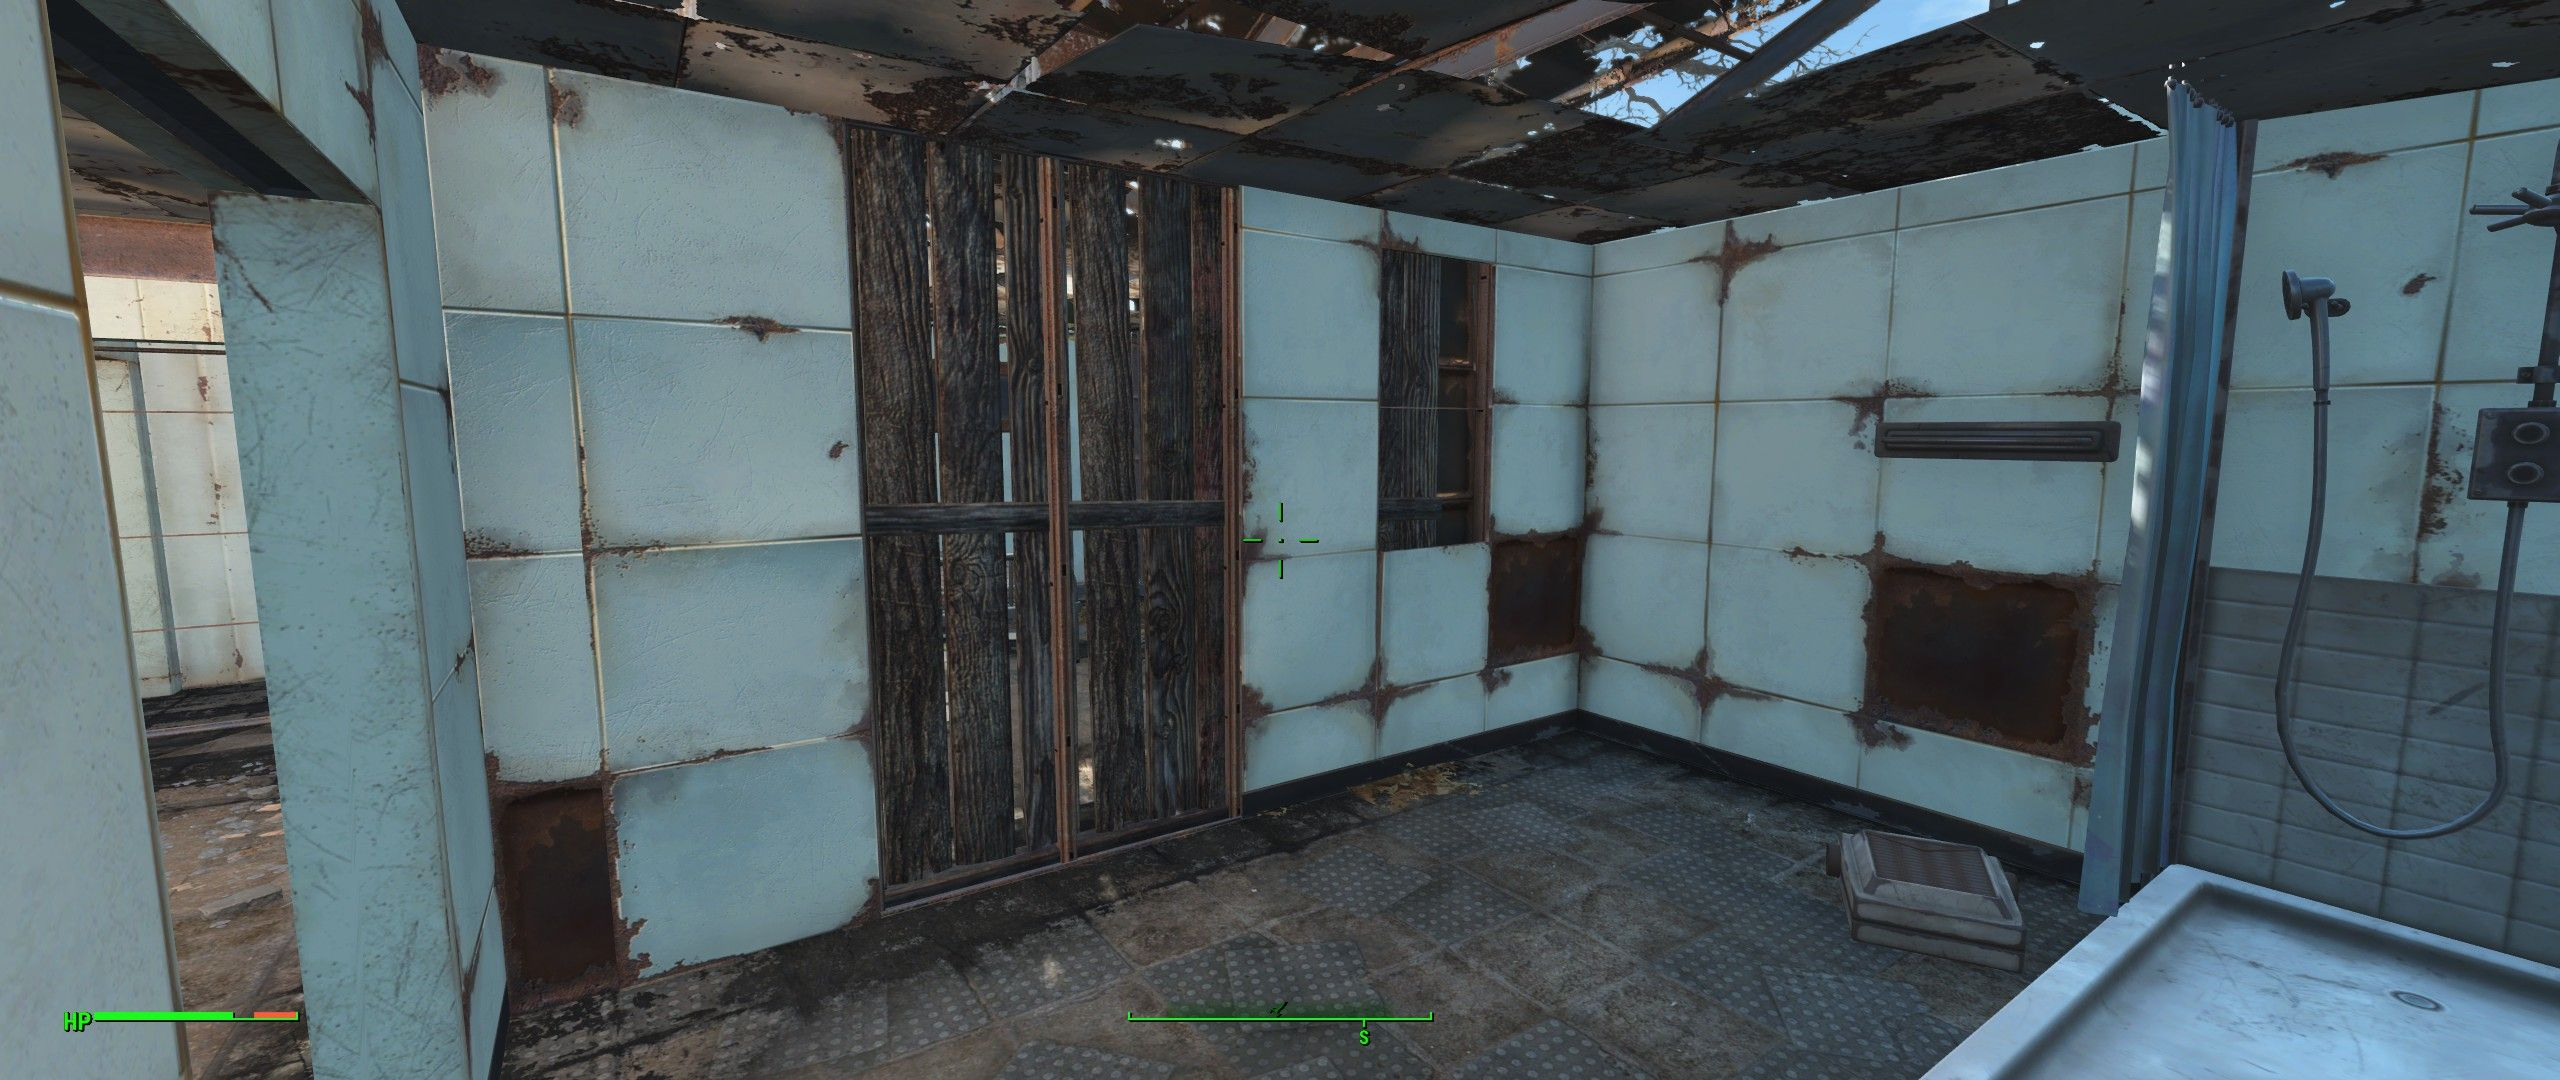 Repairing the homes in sanctuary fallout 4 fallout repairing the homes in sanctuary fallout 4 malvernweather Images